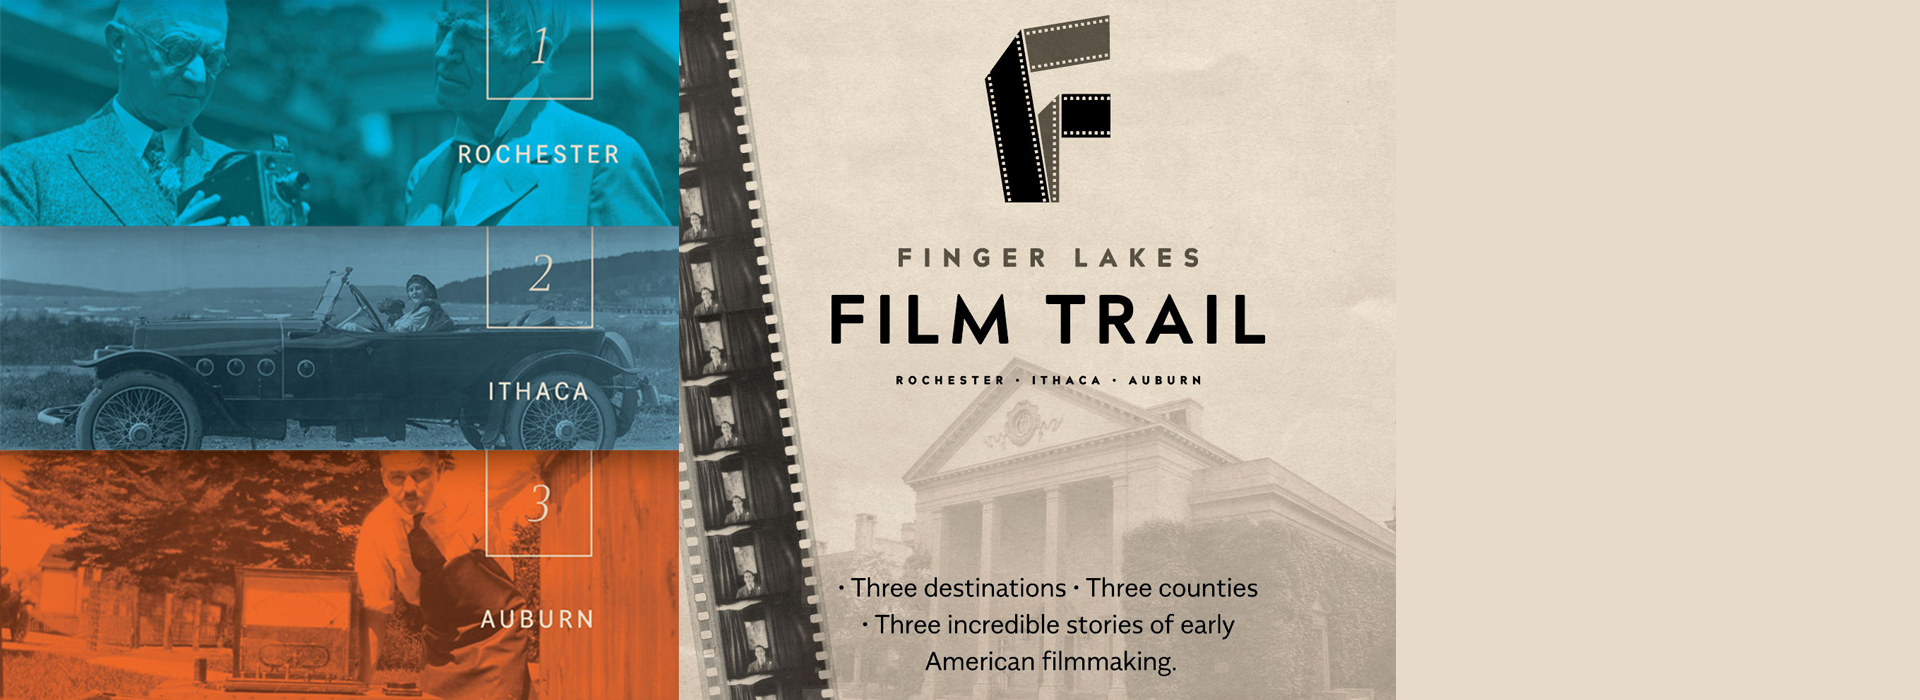 Finger Lakes Film Trail